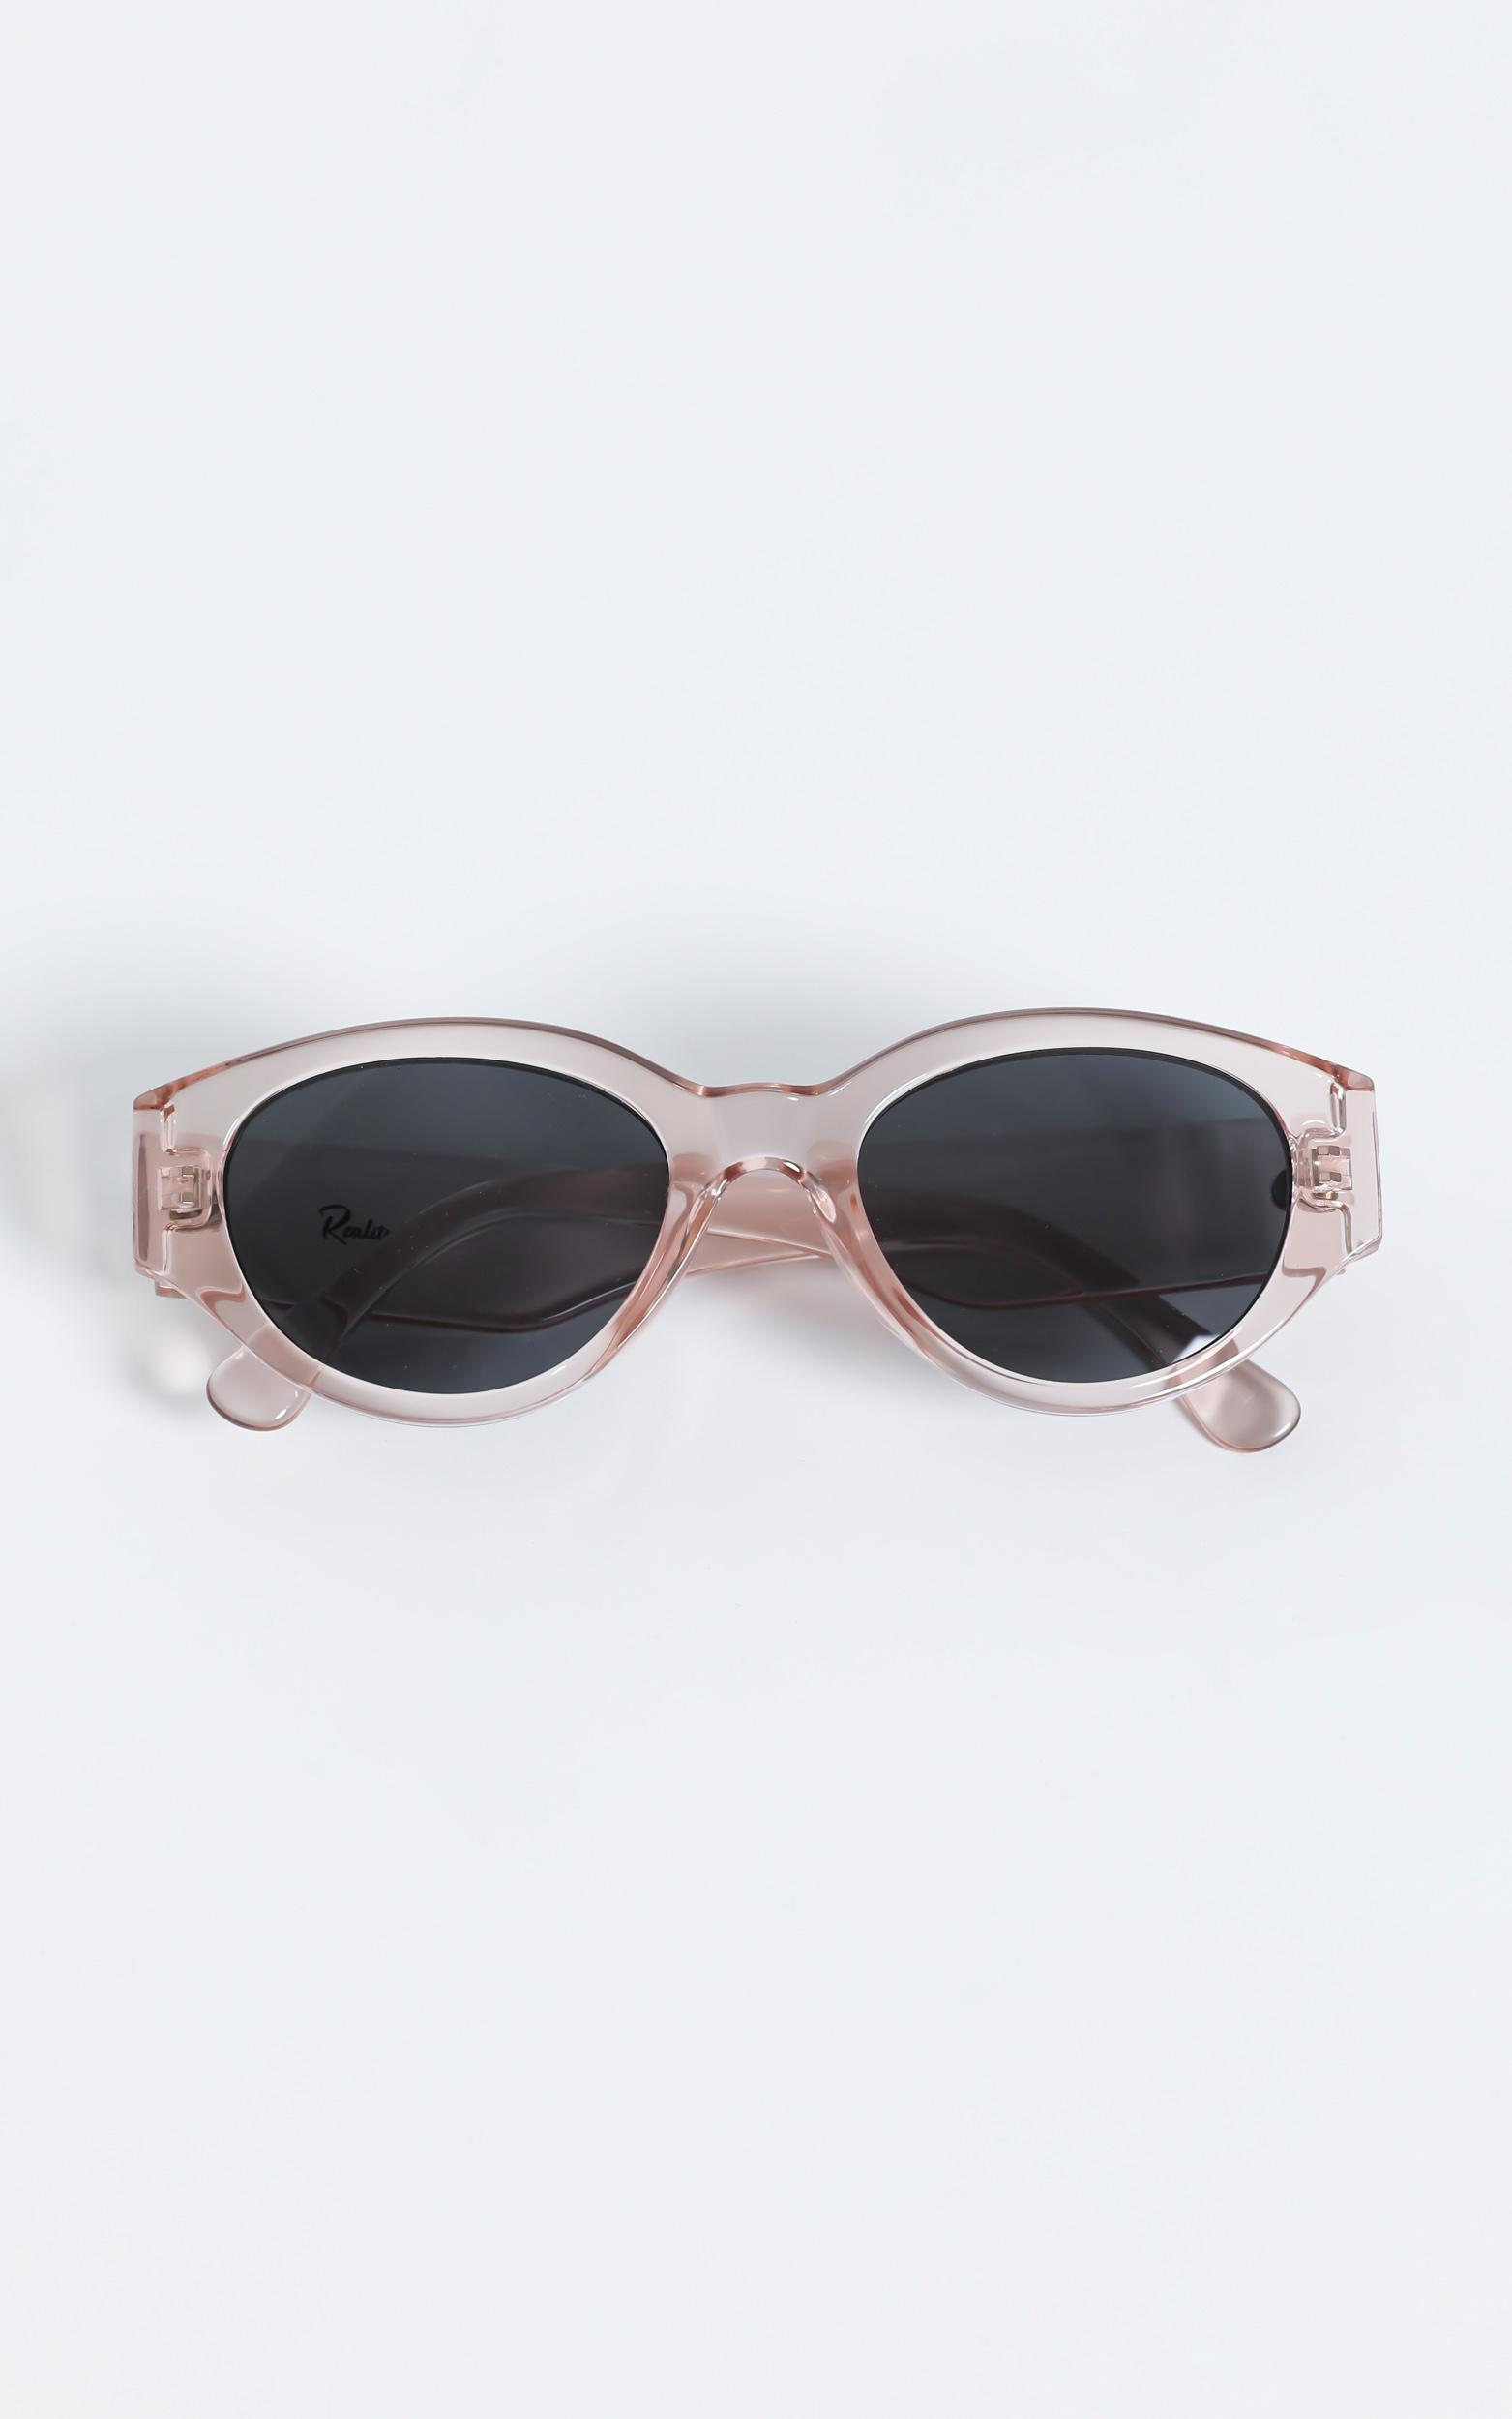 Reality Eyewear - Strict Machine Sunglasses in Berry, Pink, hi-res image number null